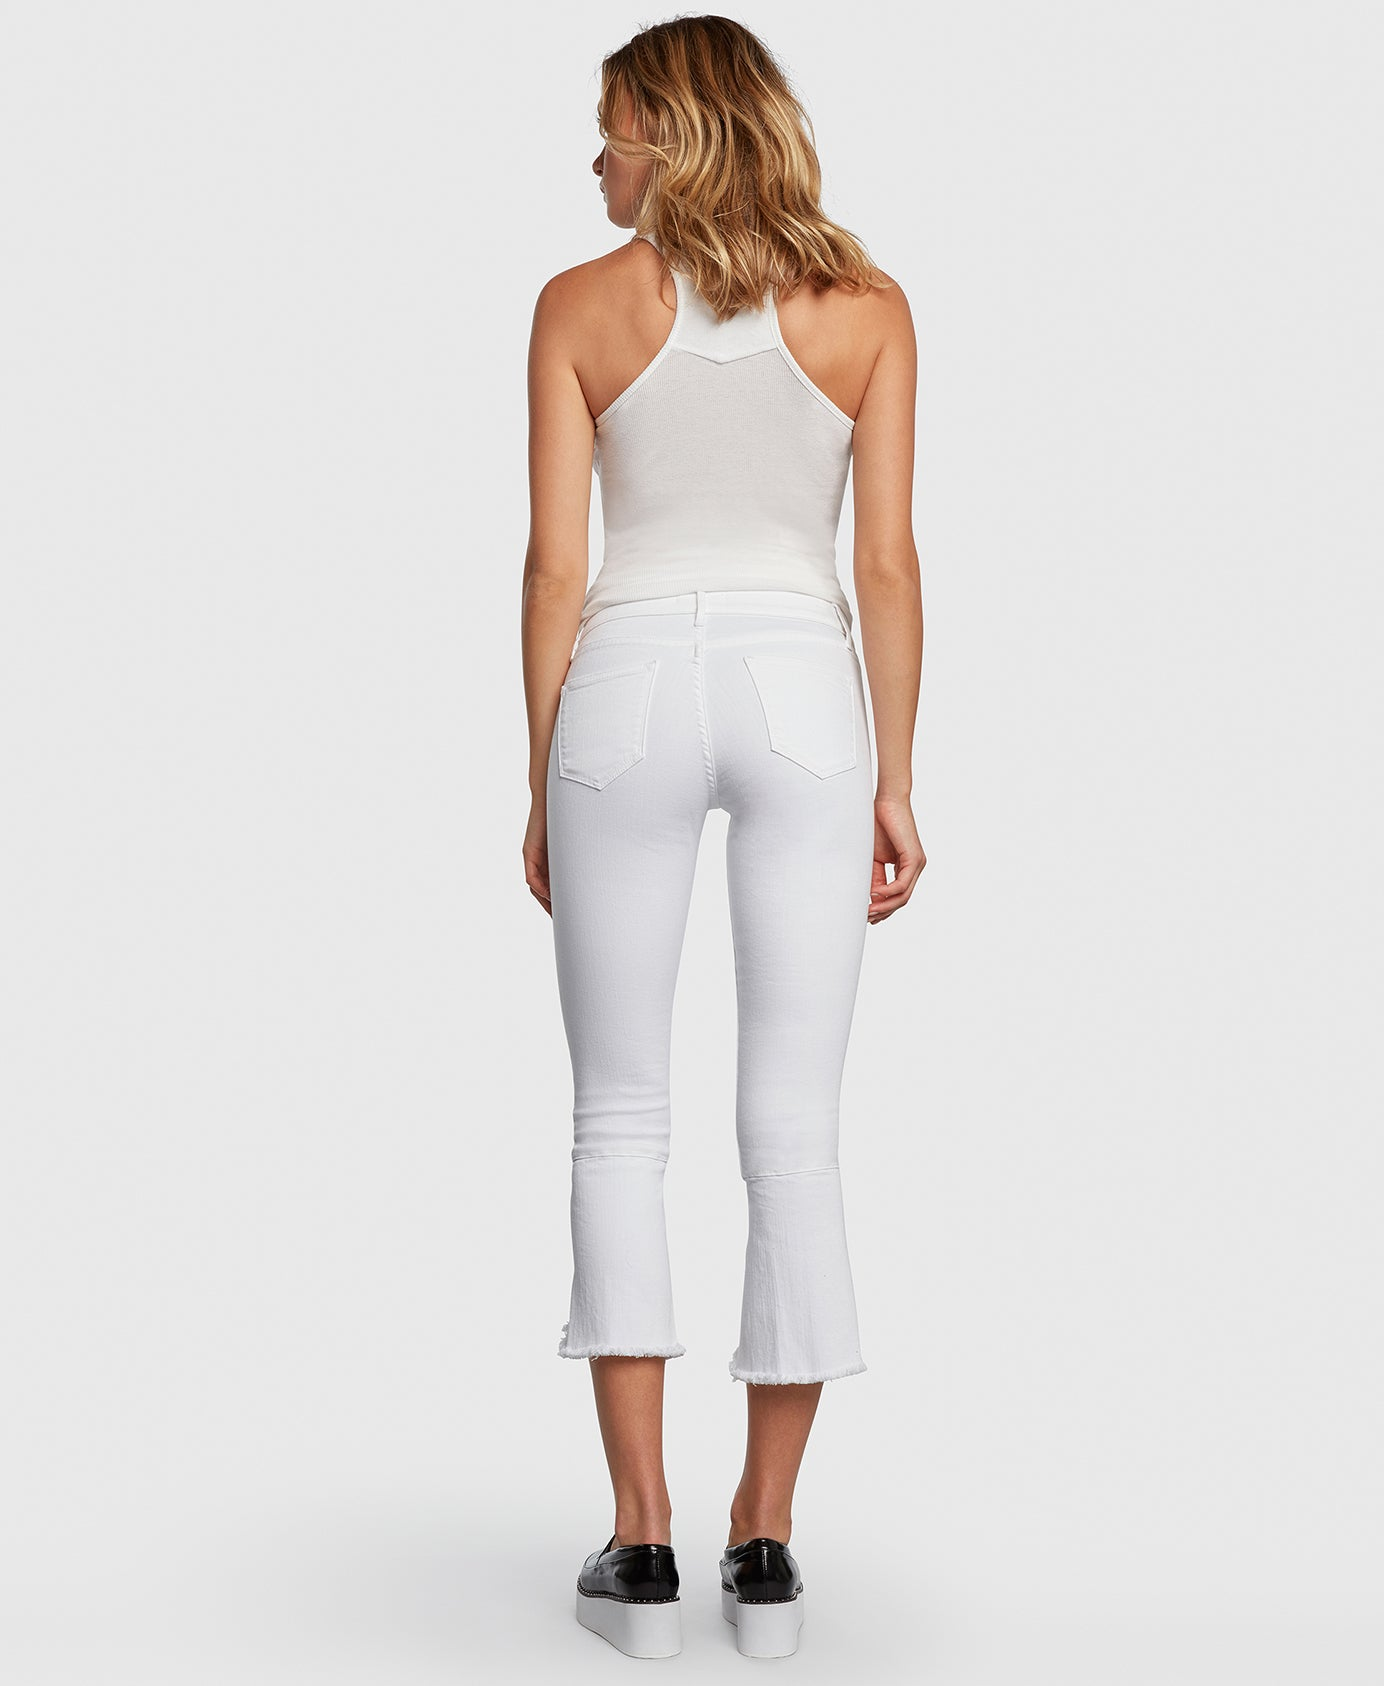 Principle FLIRT in Promise cropped jeans back